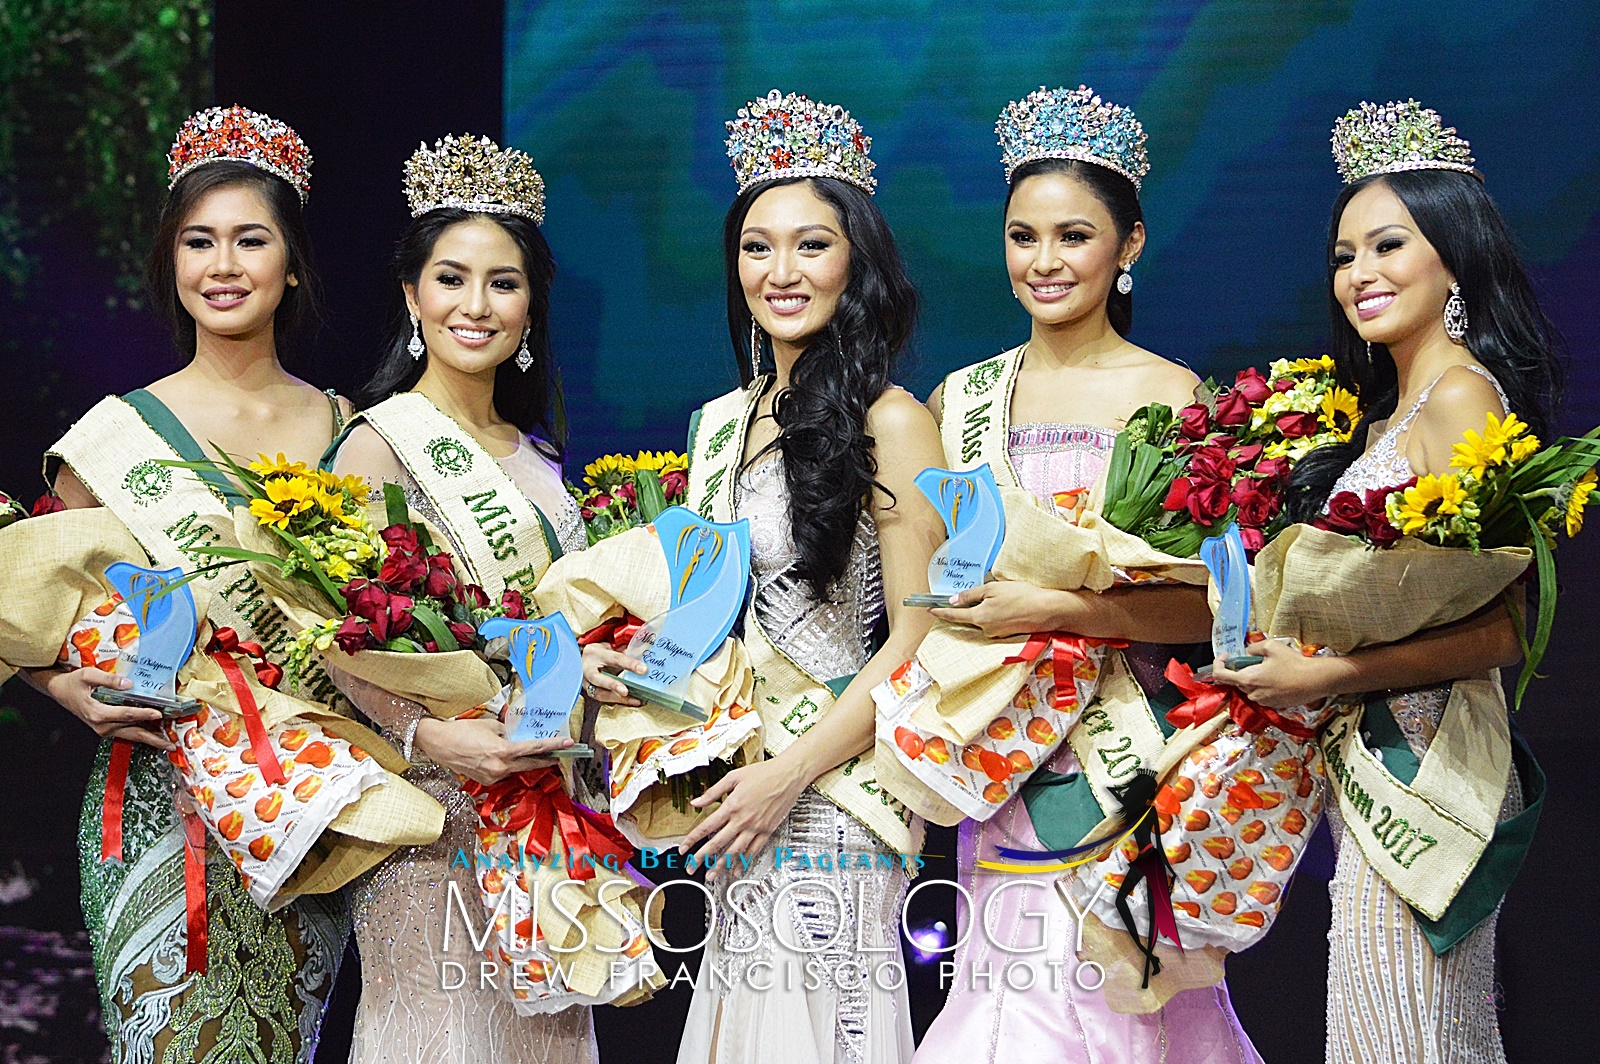 Miss Philippines Earth 2017 Karen Ibasco from the City of Manila with her elemental court: Miss Philippines Air Kim de Guzman from Olongapo City; Miss Philippines Water Jessica Marasigan from Caloocan City; Miss Philippines Fire Nellza Bautista from Villanueva, Misamis Oriental; and Miss Philippines Eco-Tourism Vanessa Mae Castillo from Lobo, Batangas.